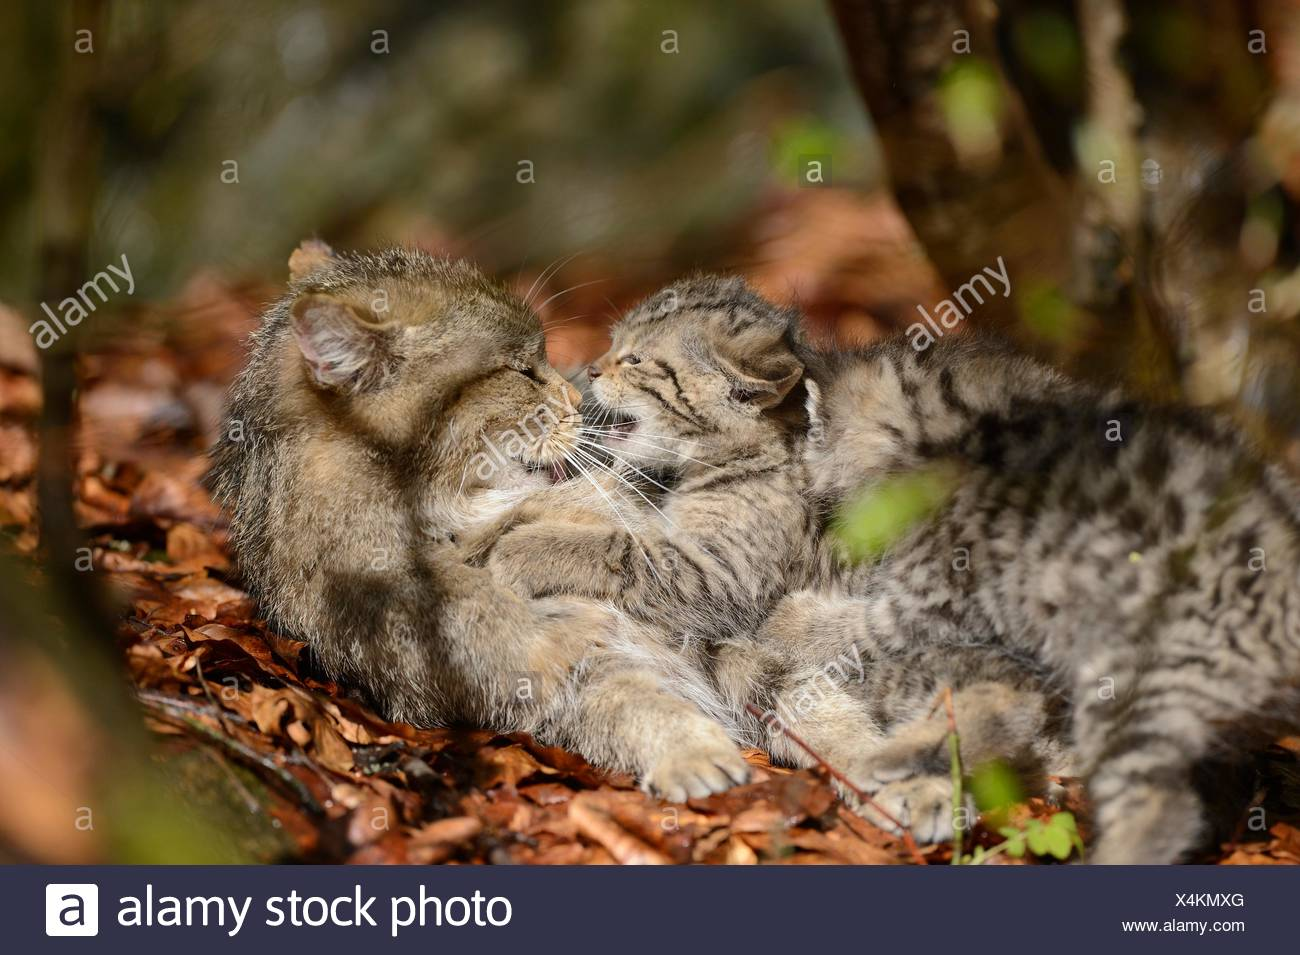 Two European wildcat kittens in Bavarian Forest National Park, Germany Stock Photo